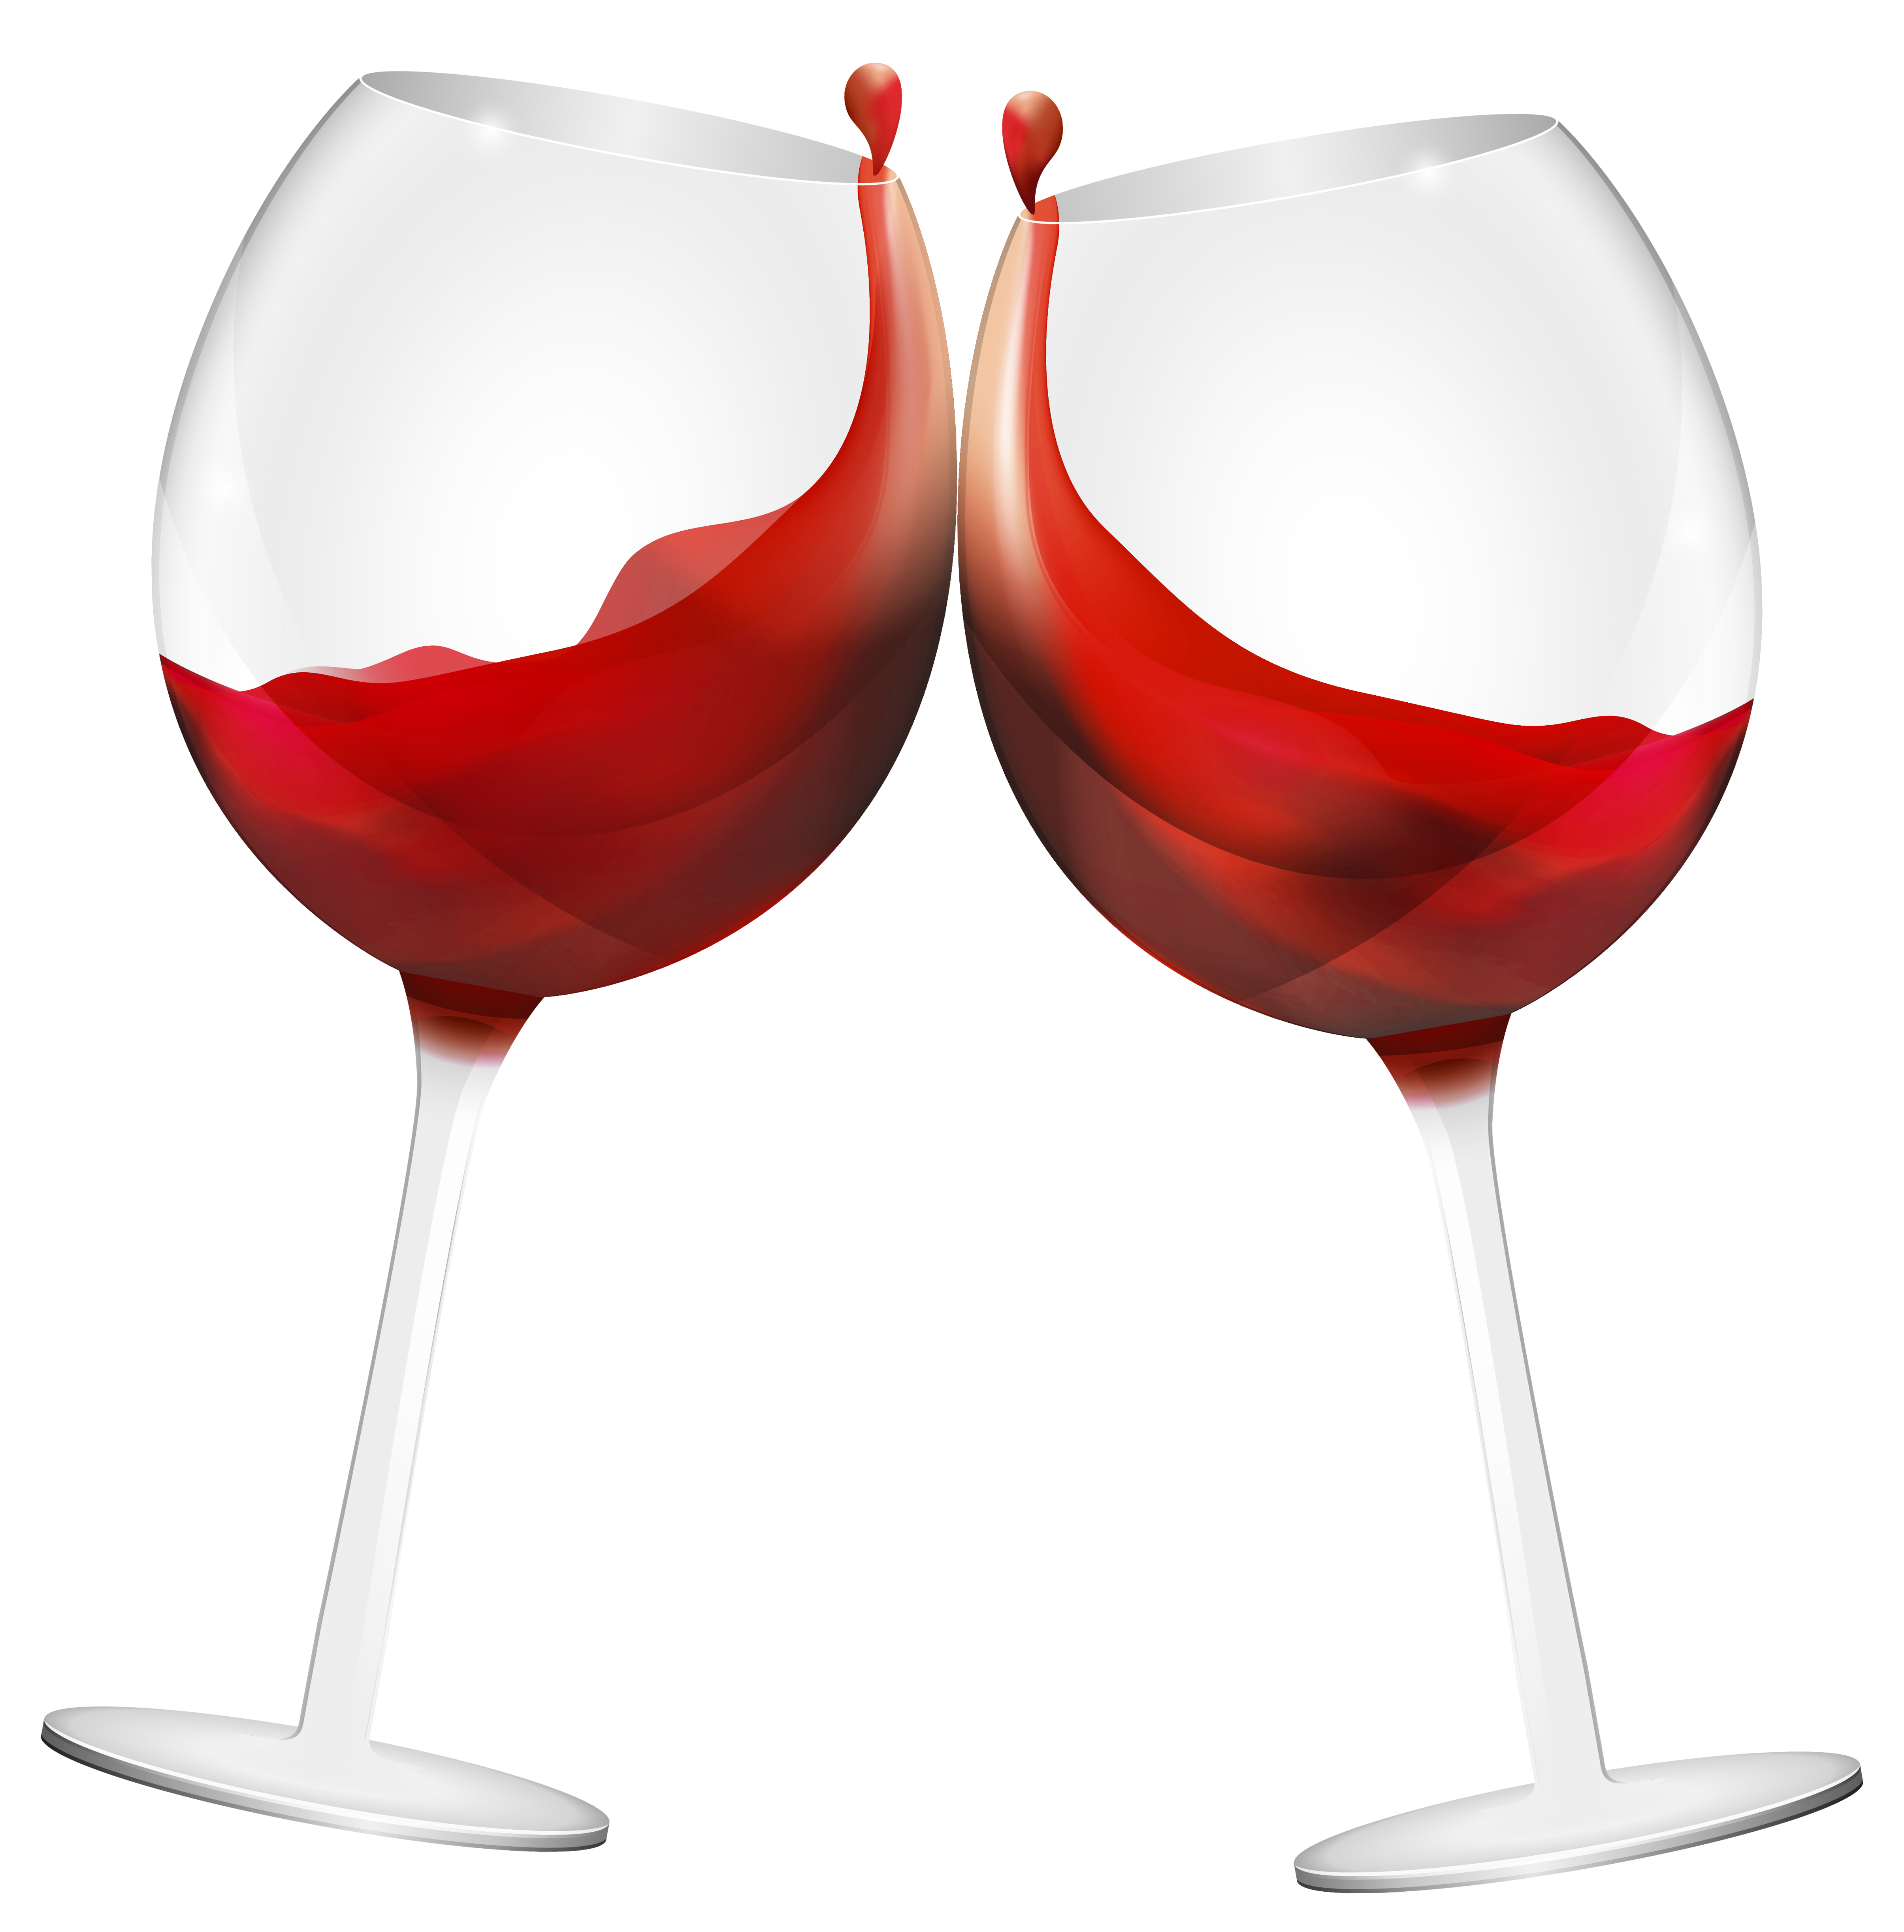 Glass Of Wine Clipart   Free download on ClipArtMag